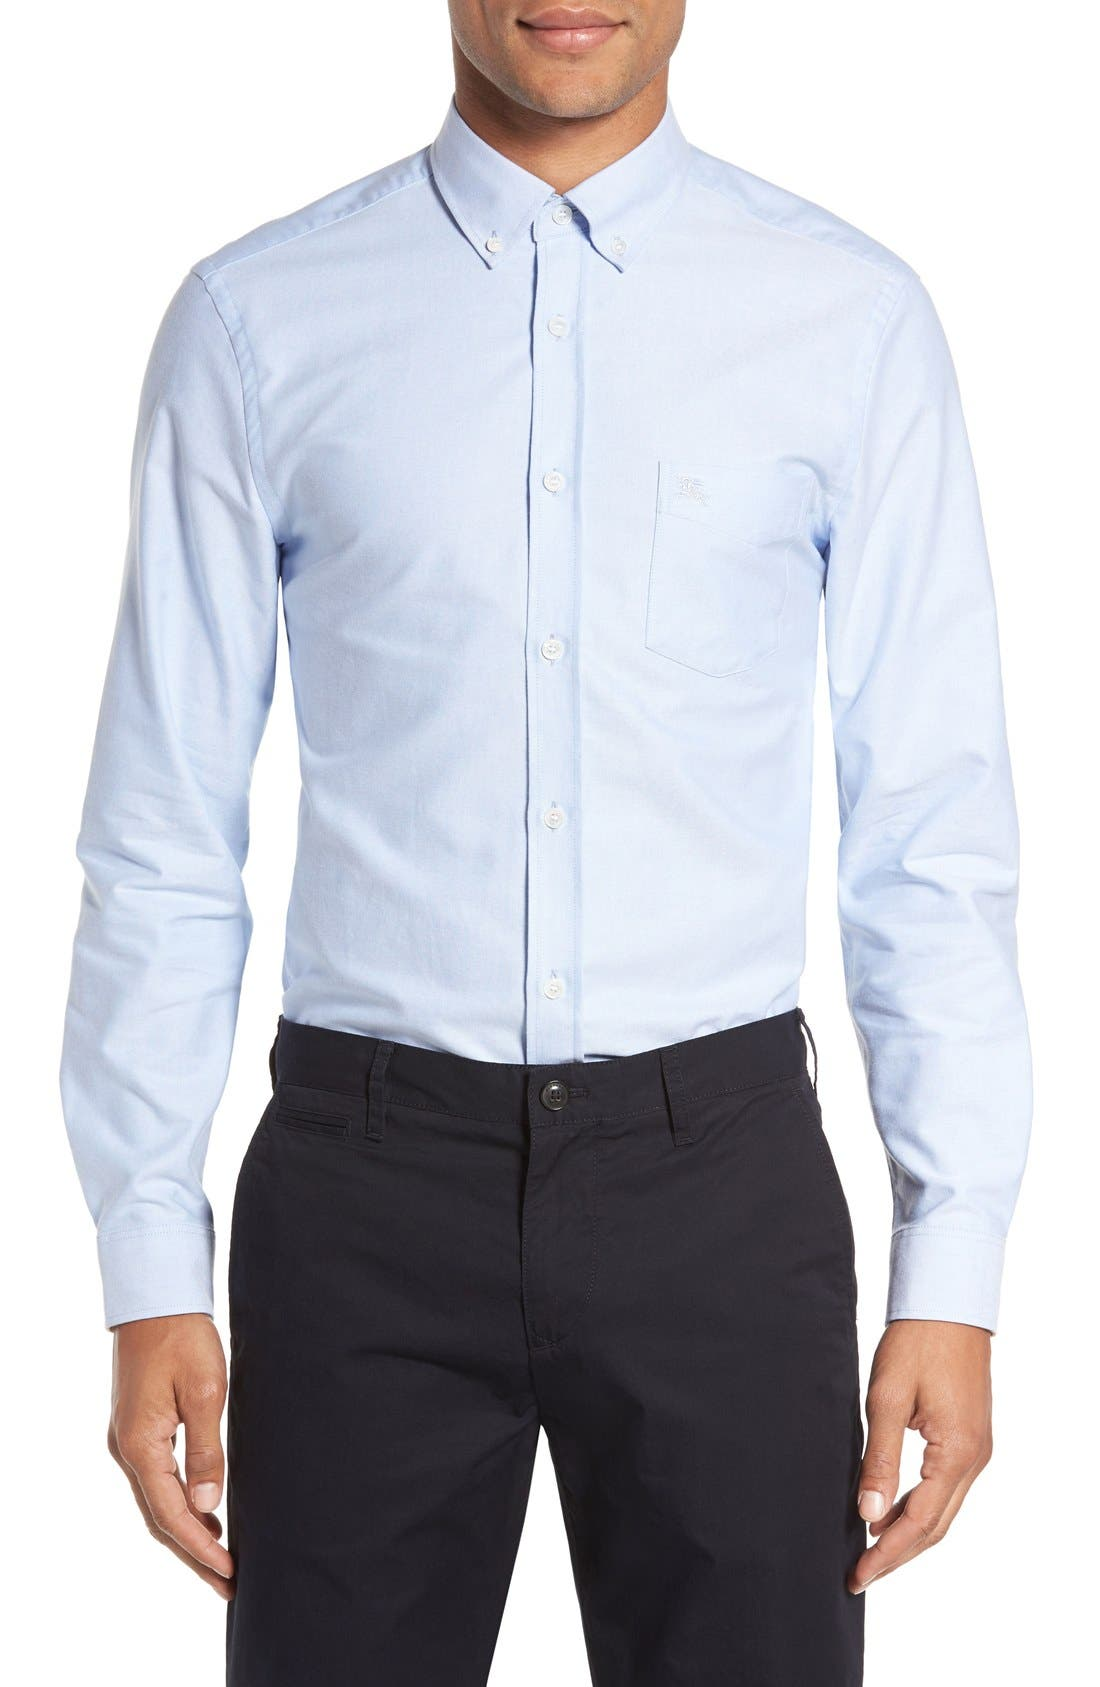 Alternate Image 1 Selected - Burberry 'Reagan' Extra Trim Fit Solid Cotton Sport Shirt